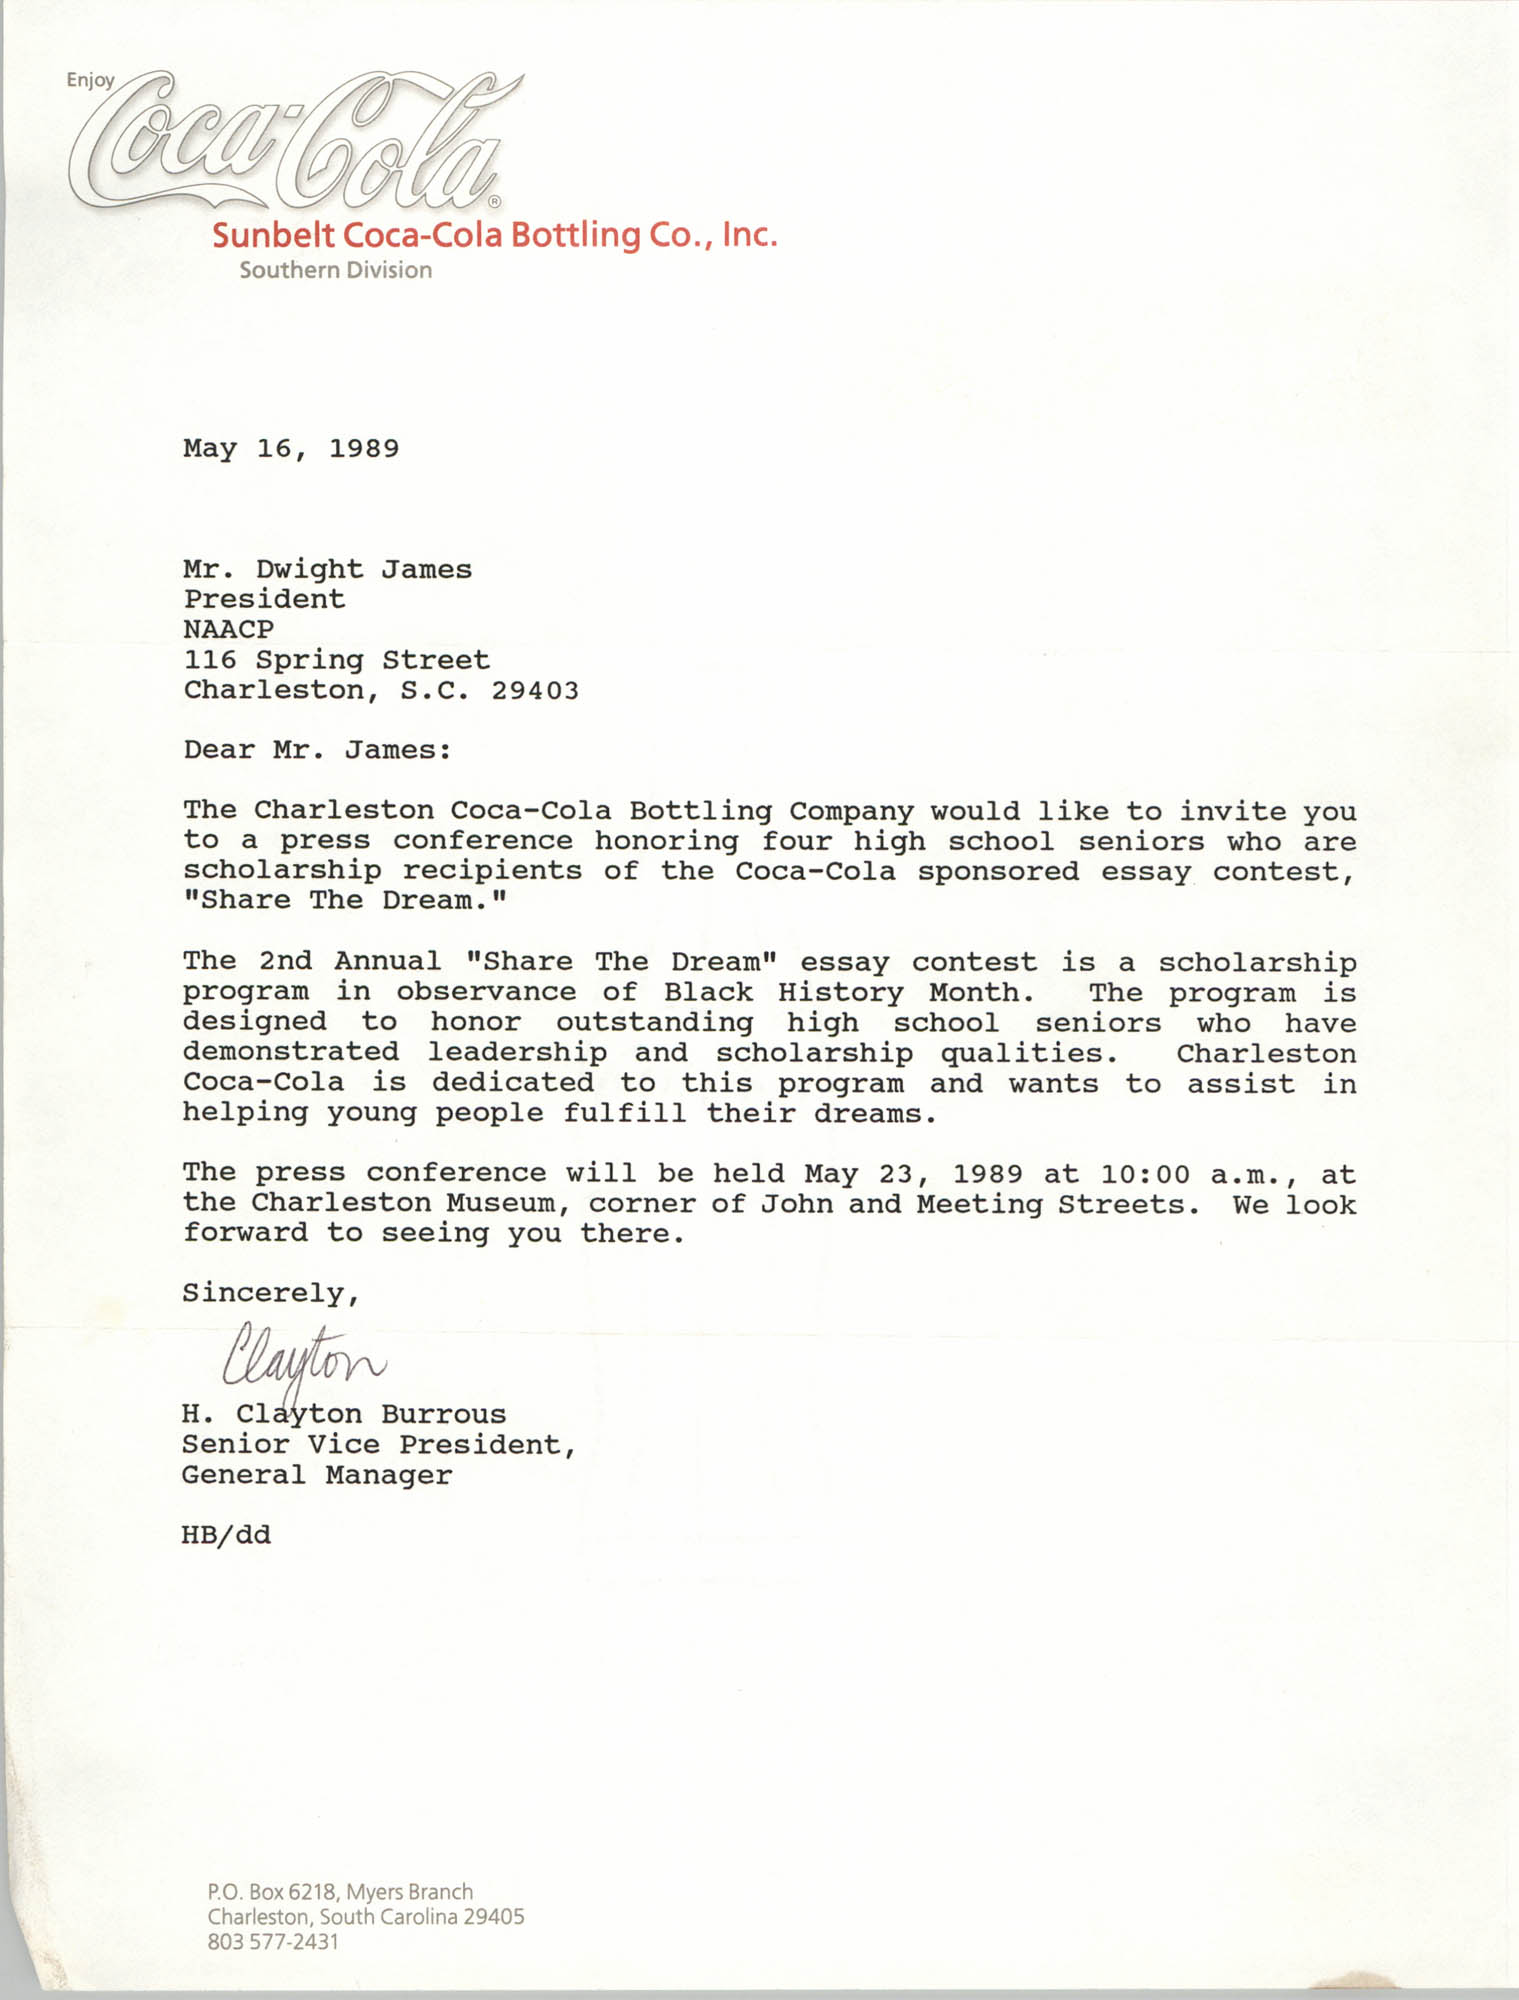 Letter from H. Clayton Burrous to Dwight James, May 16, 1989